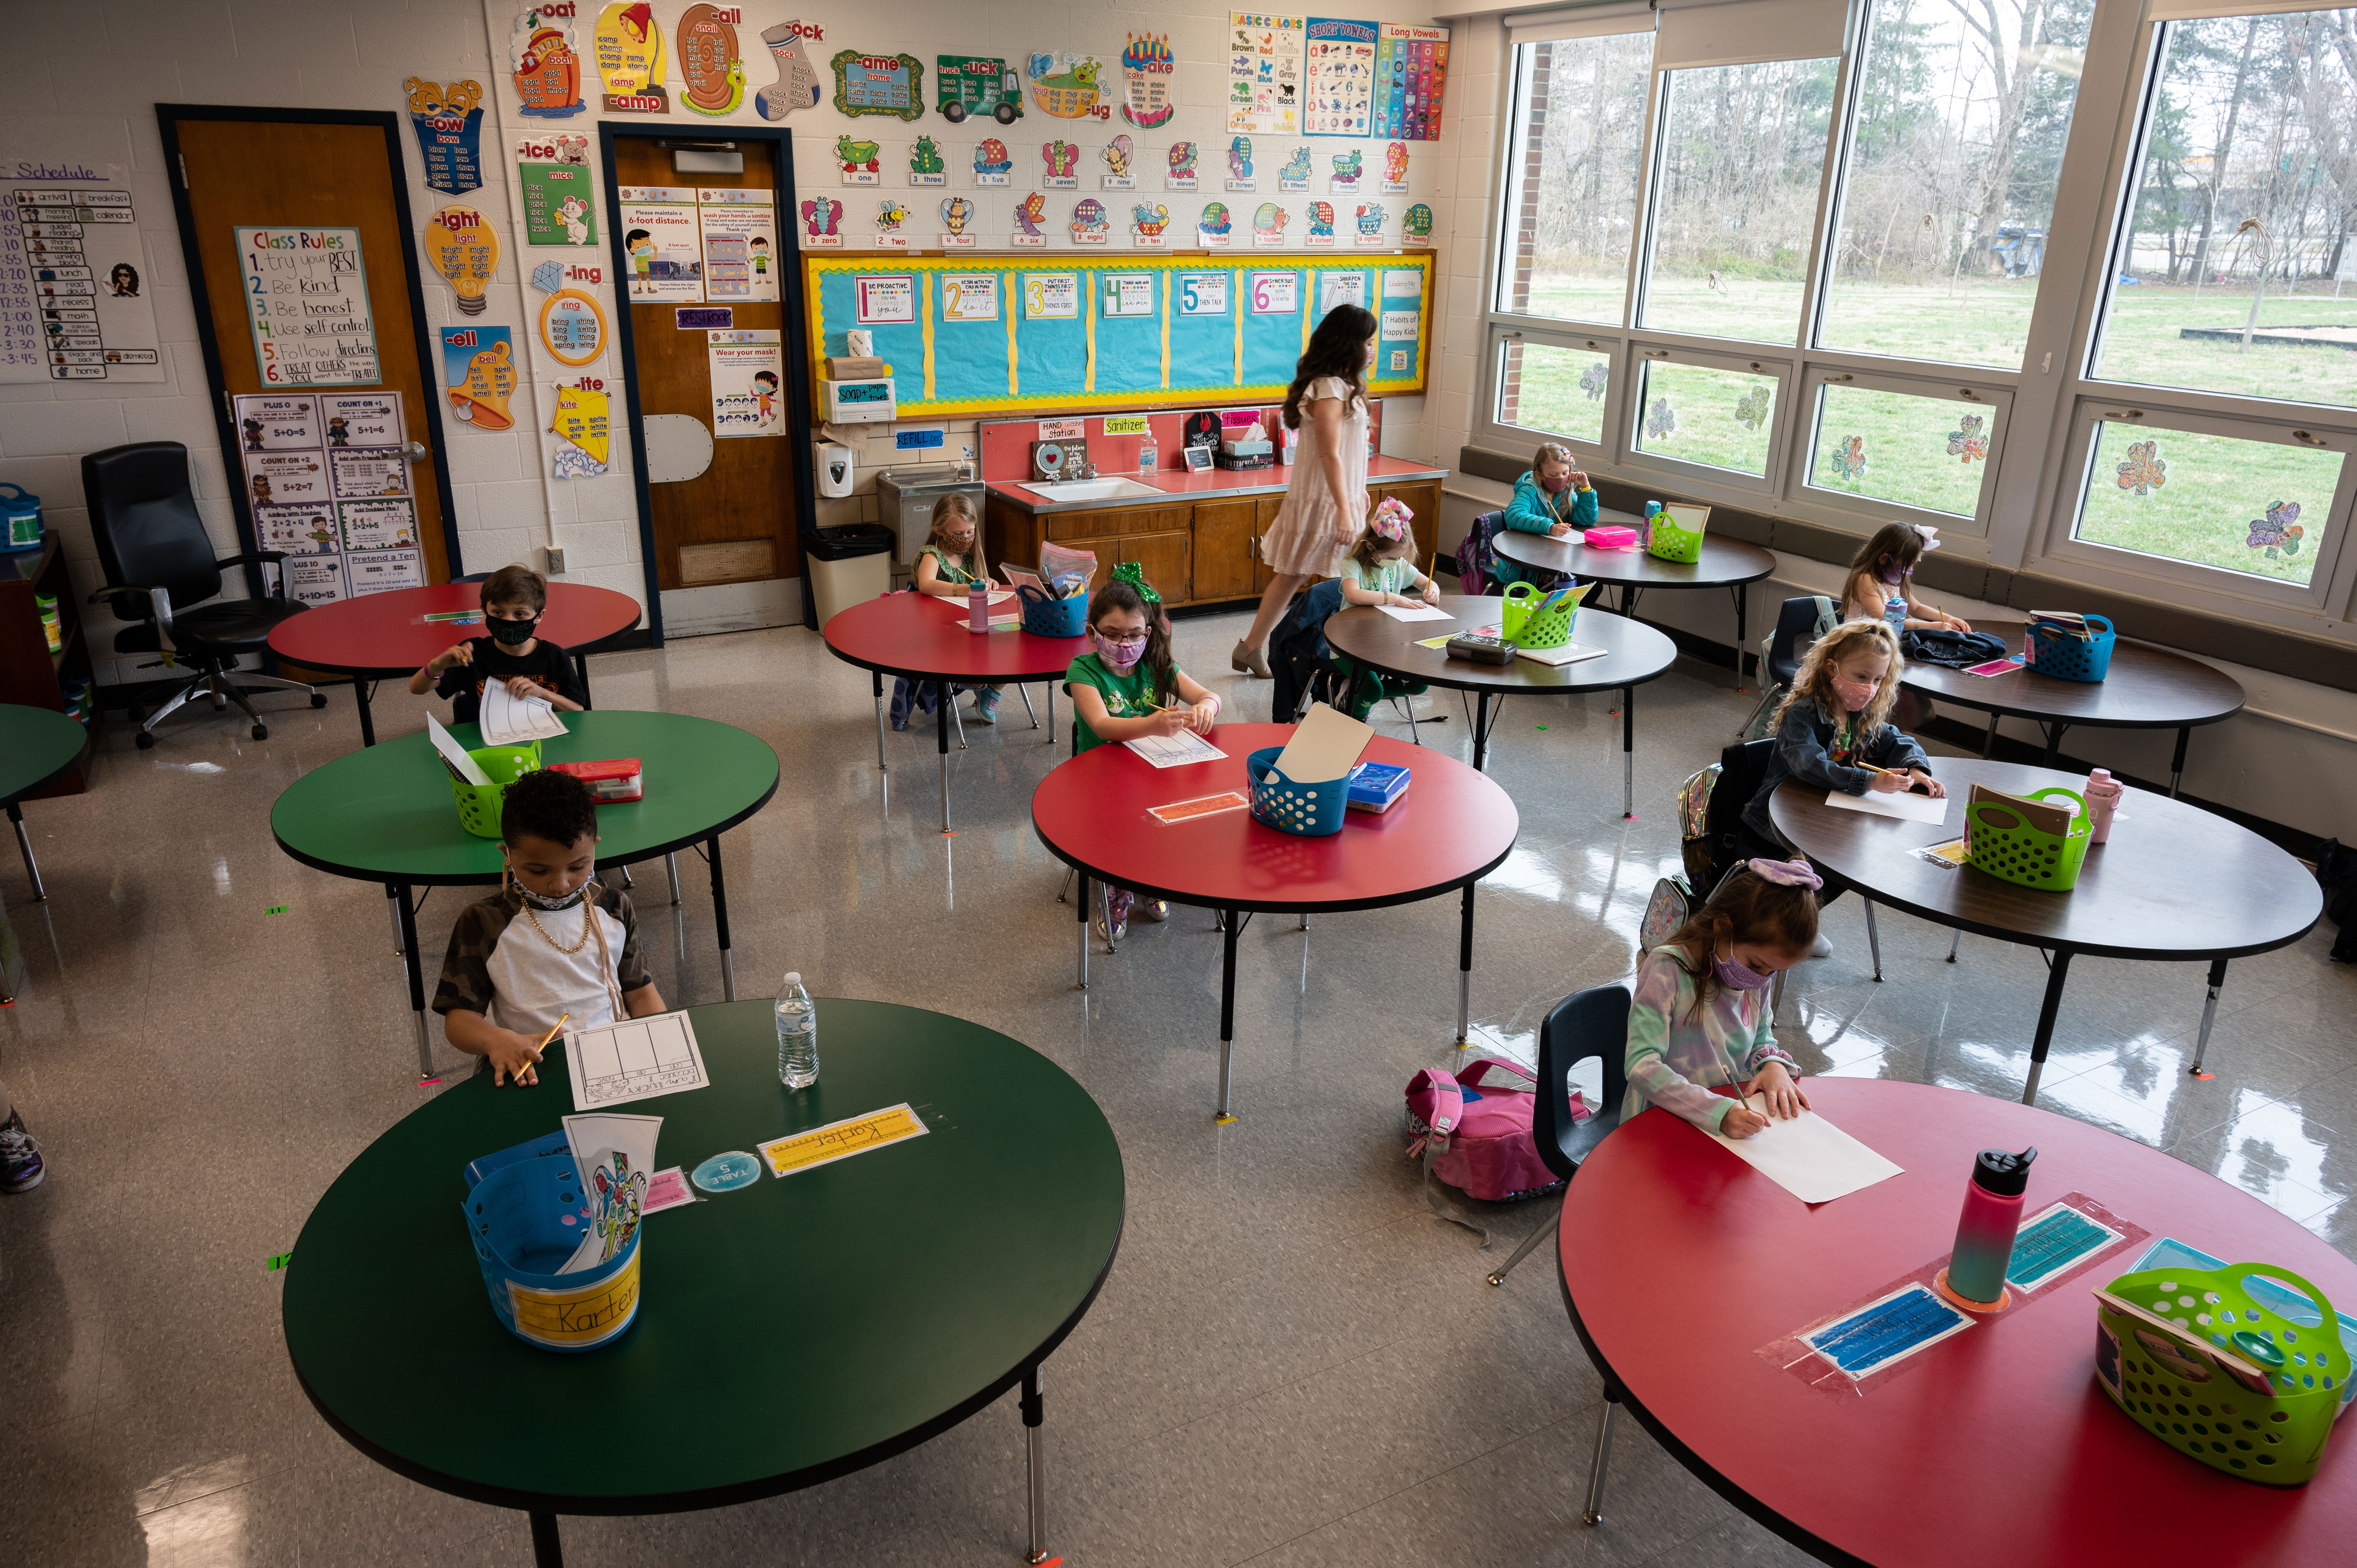 Students work in a classroom at an elementary school in Louisville, Kentucky, on March 17, 2021.